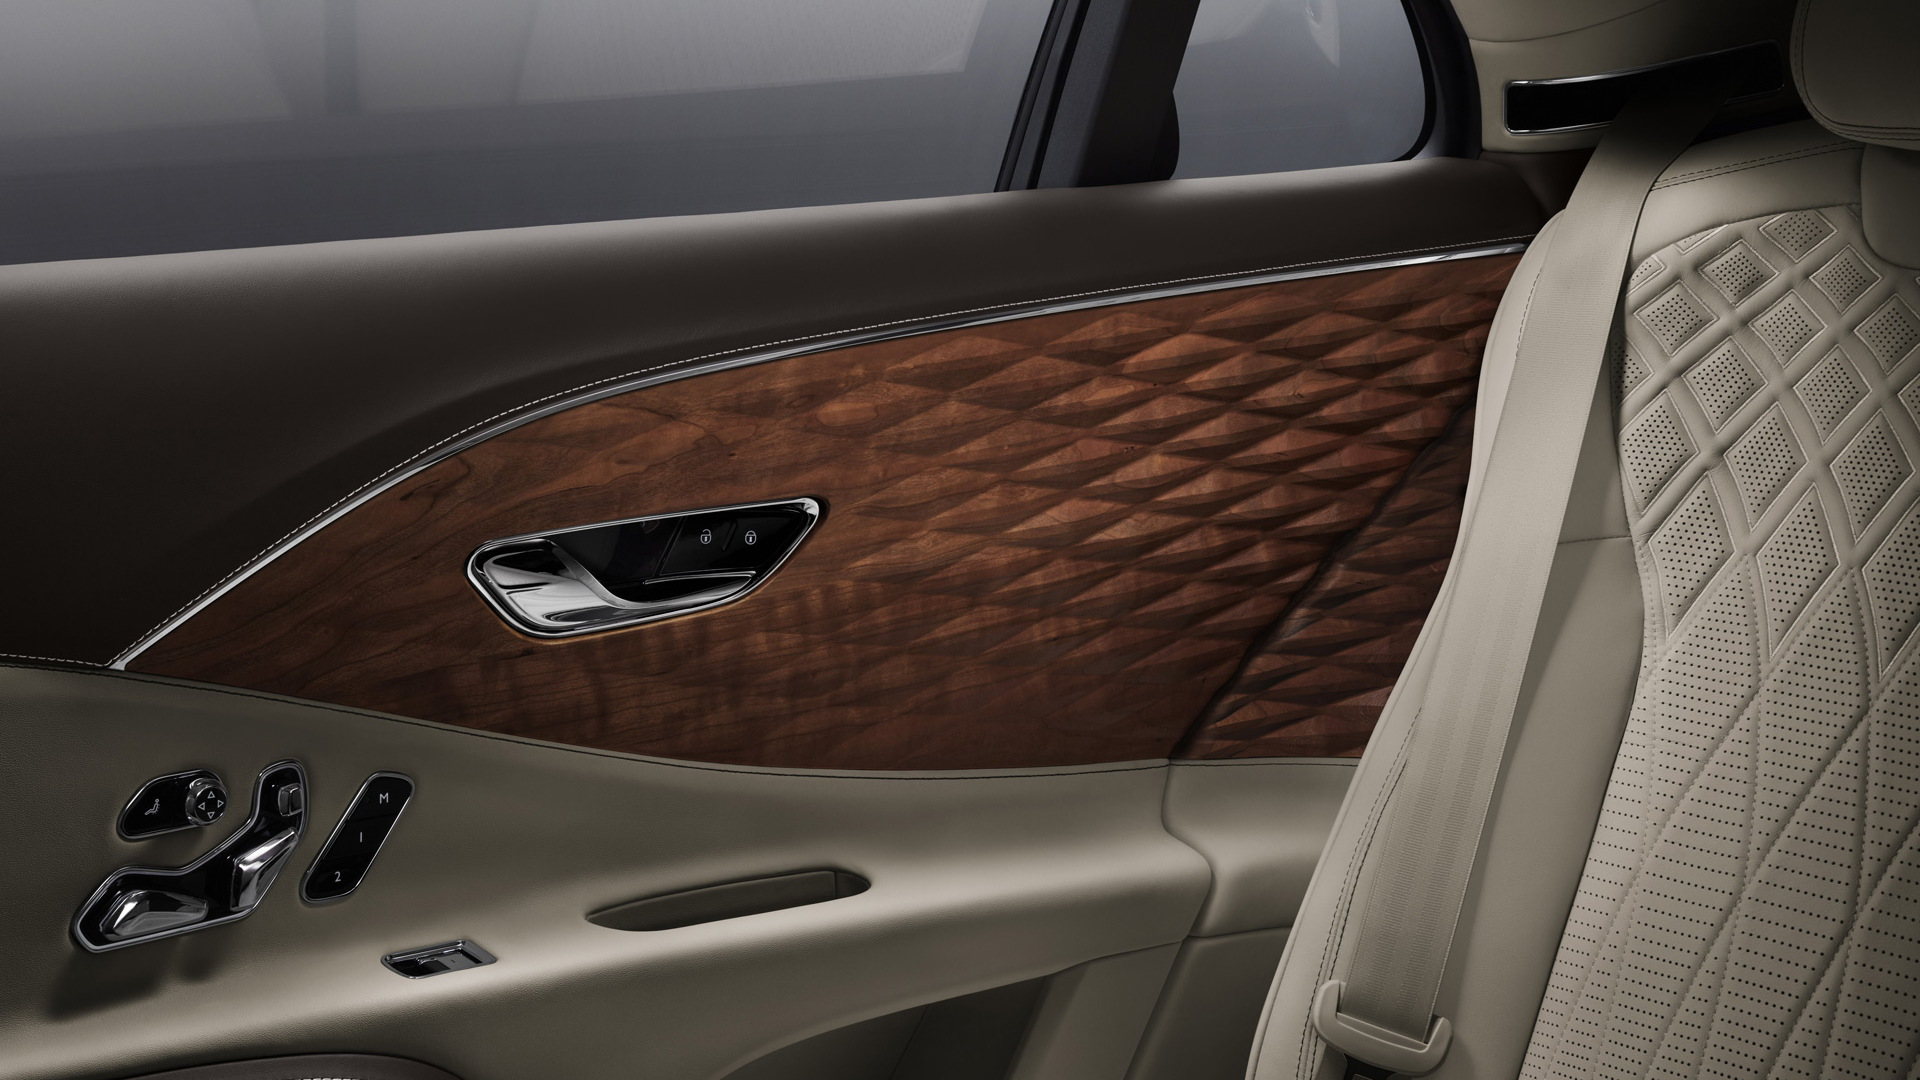 2021 Bentley Flying Spur equipped with three-dimensional wood trim